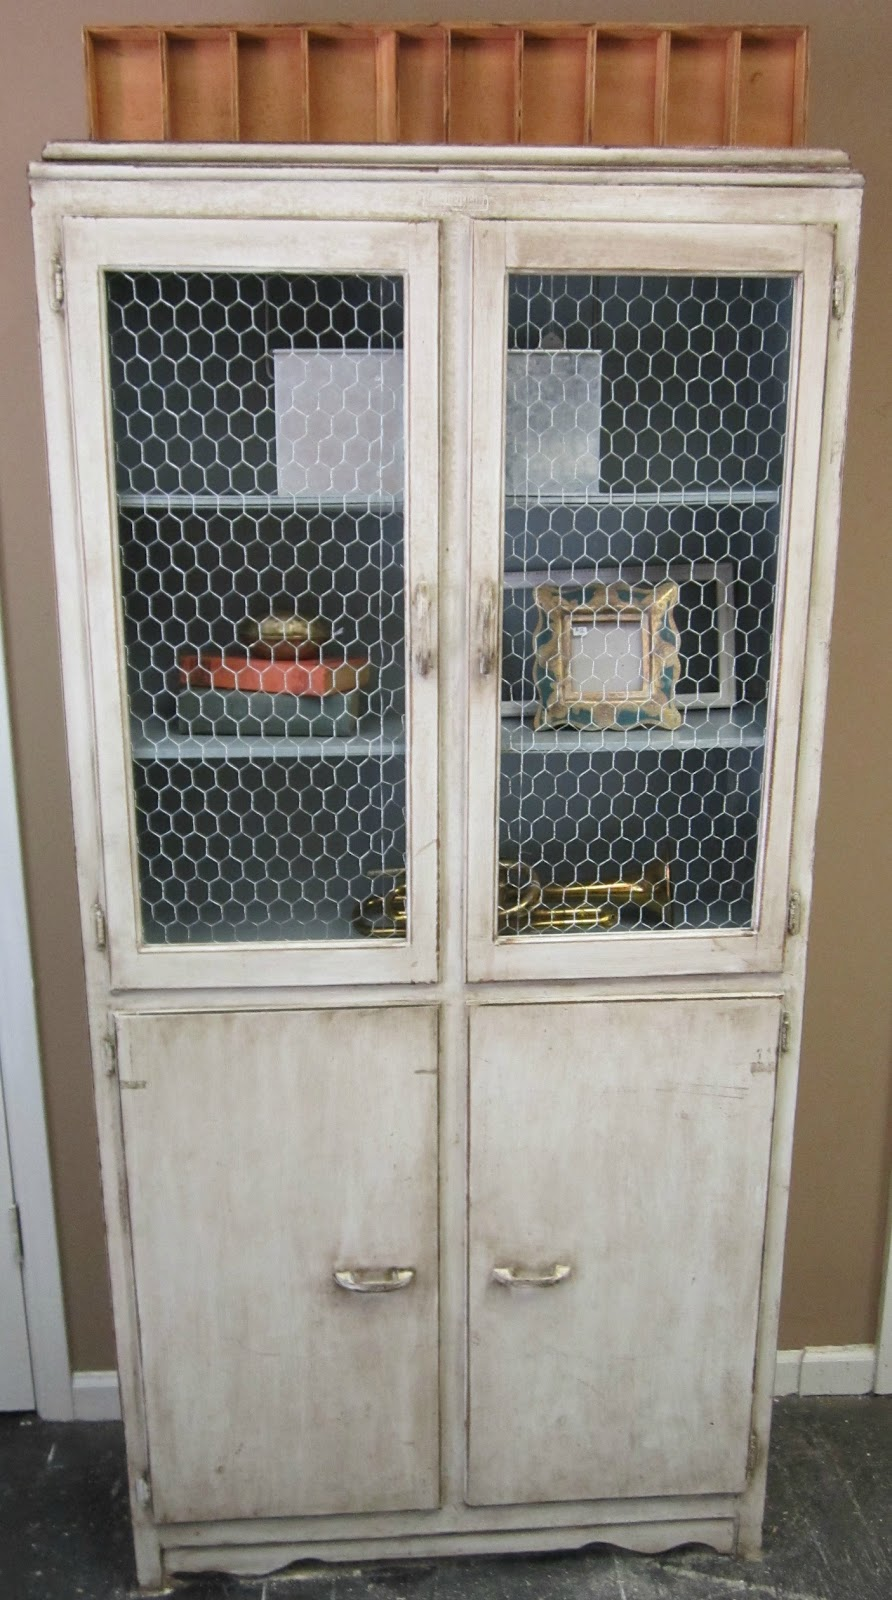 Change Cupboard Doors Kitchen Faucet Pull Out Sprayer Vintage Finds: Chicken Wire Cabinet